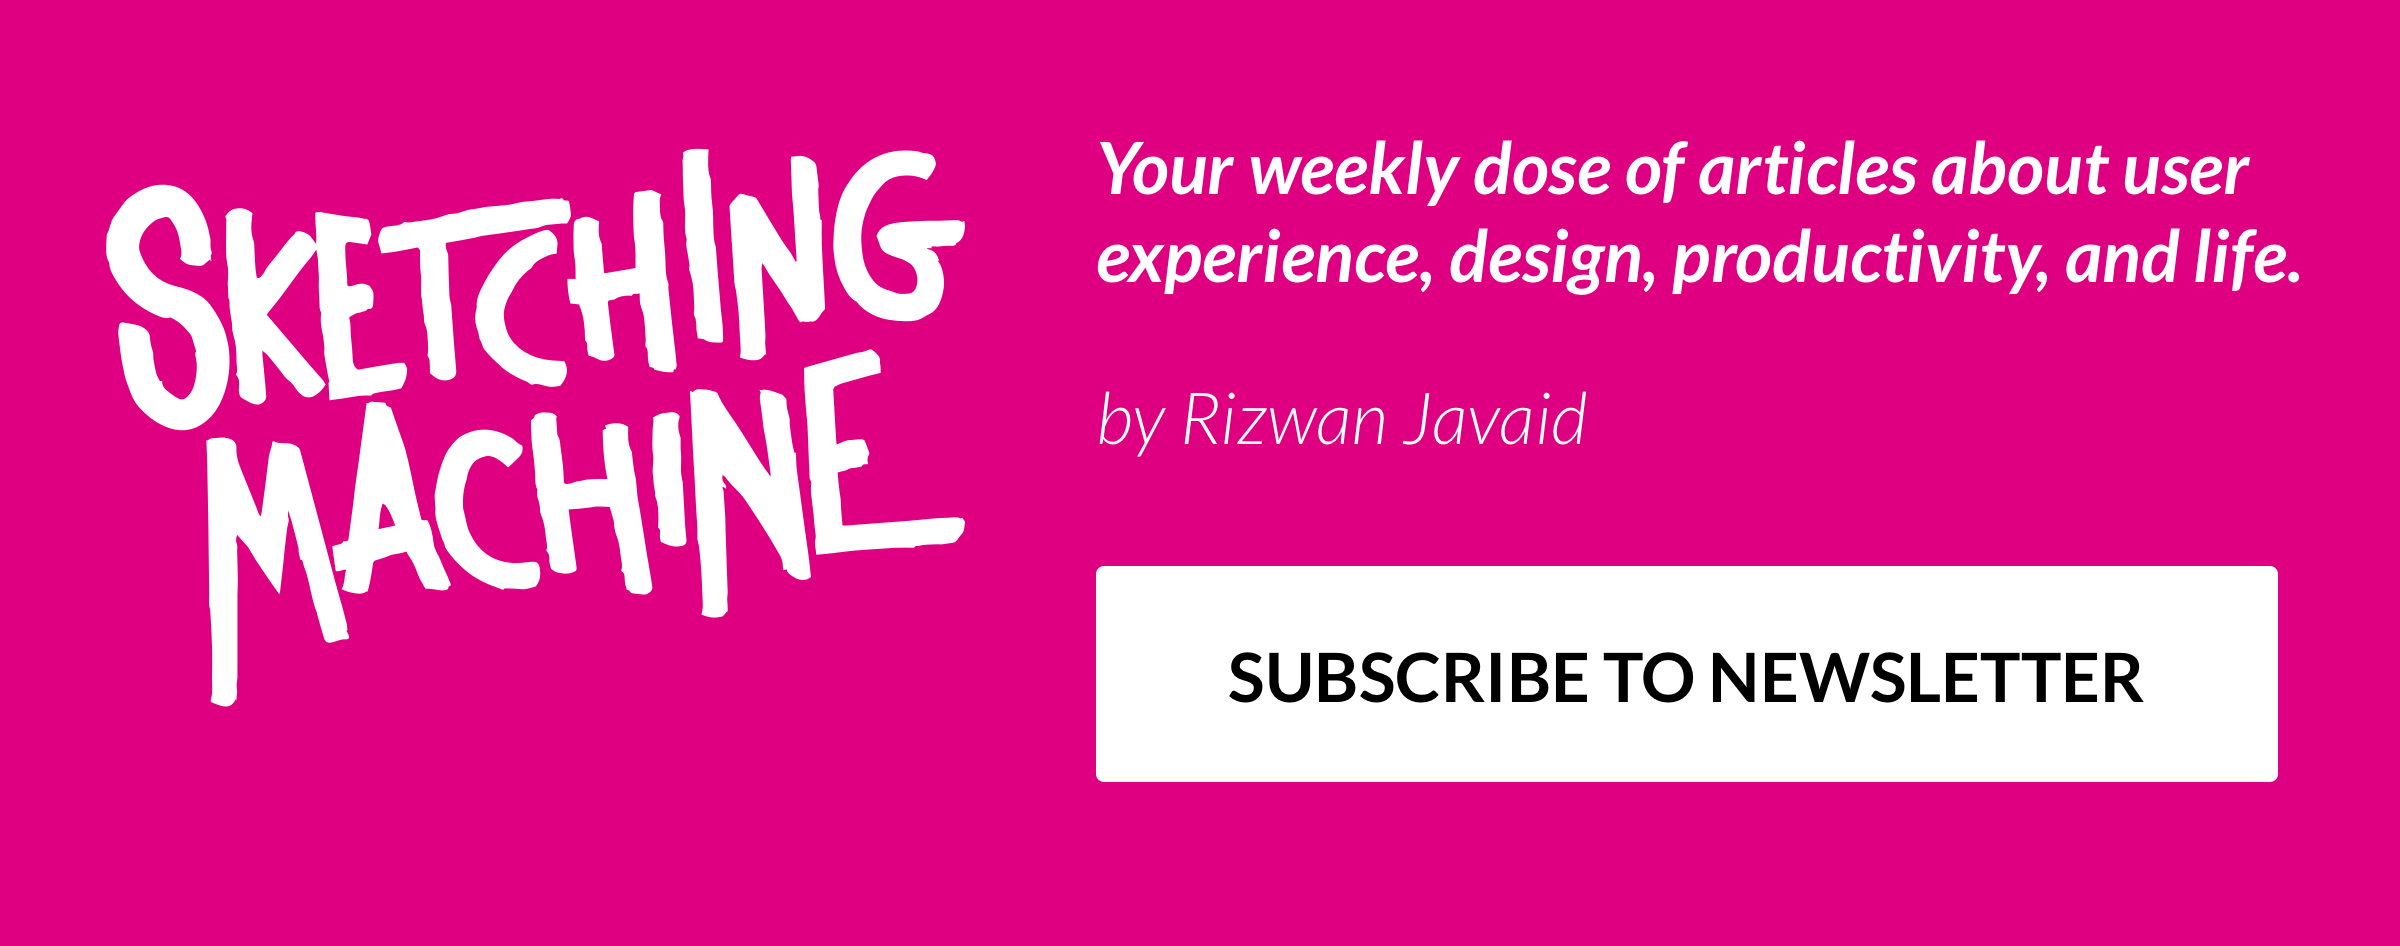 Newsletter Banner@2x.png